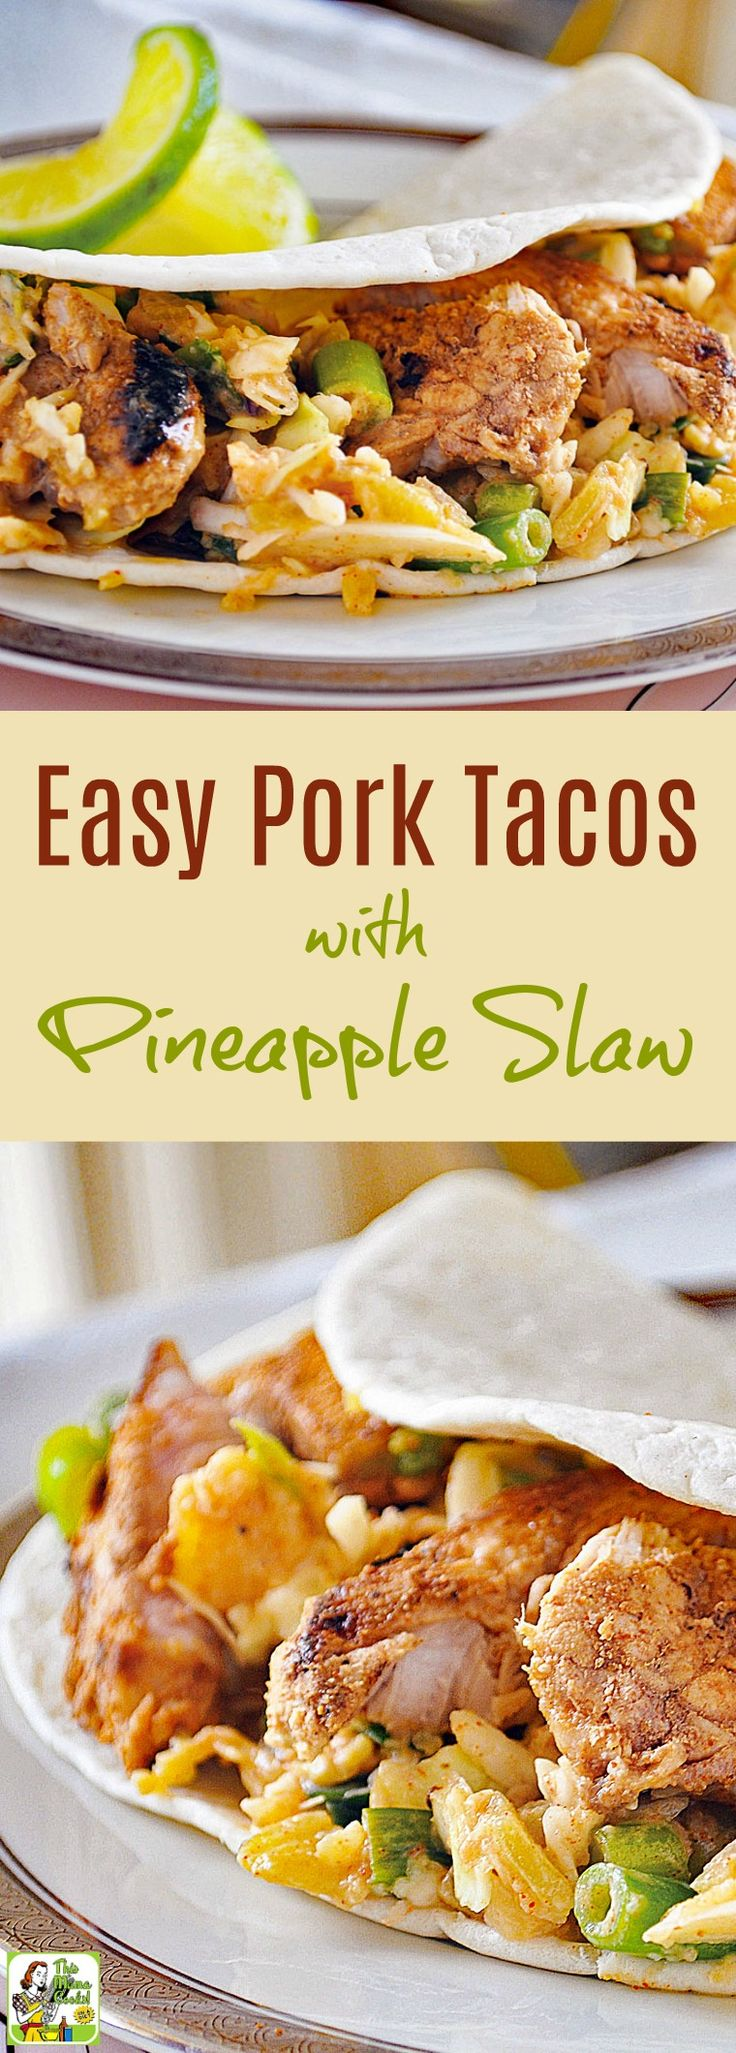 This Easy Pork Tacos with Pineapple Slaw is perfect for busy weeknights. Make on the stovetop or outside on the grill. Serve on flour tortillas or gluten free corn tortillas. Can be made dairy free, too. Click to get this easy and healthy pork taco recipe